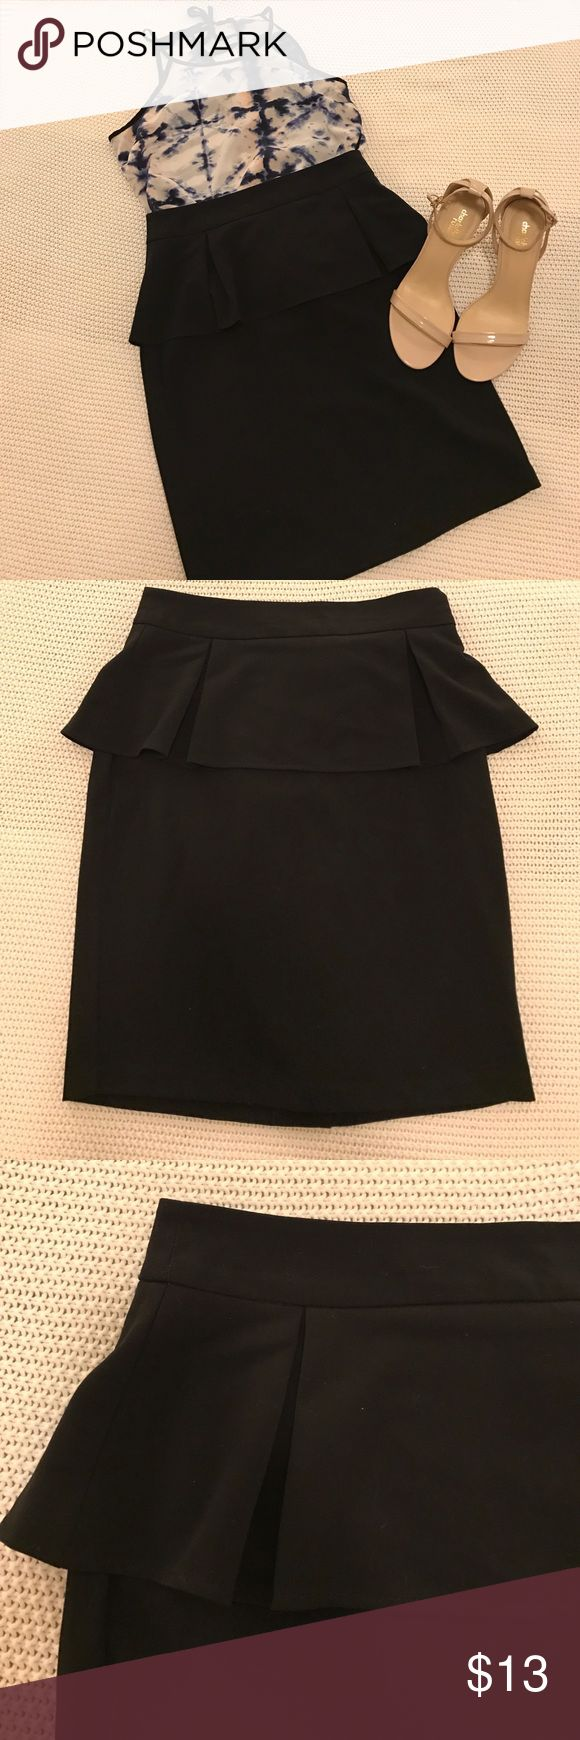 Black Peplum Skirt NWT. Size S. Perfect for work with a pair of heels. Forever 21 Skirts